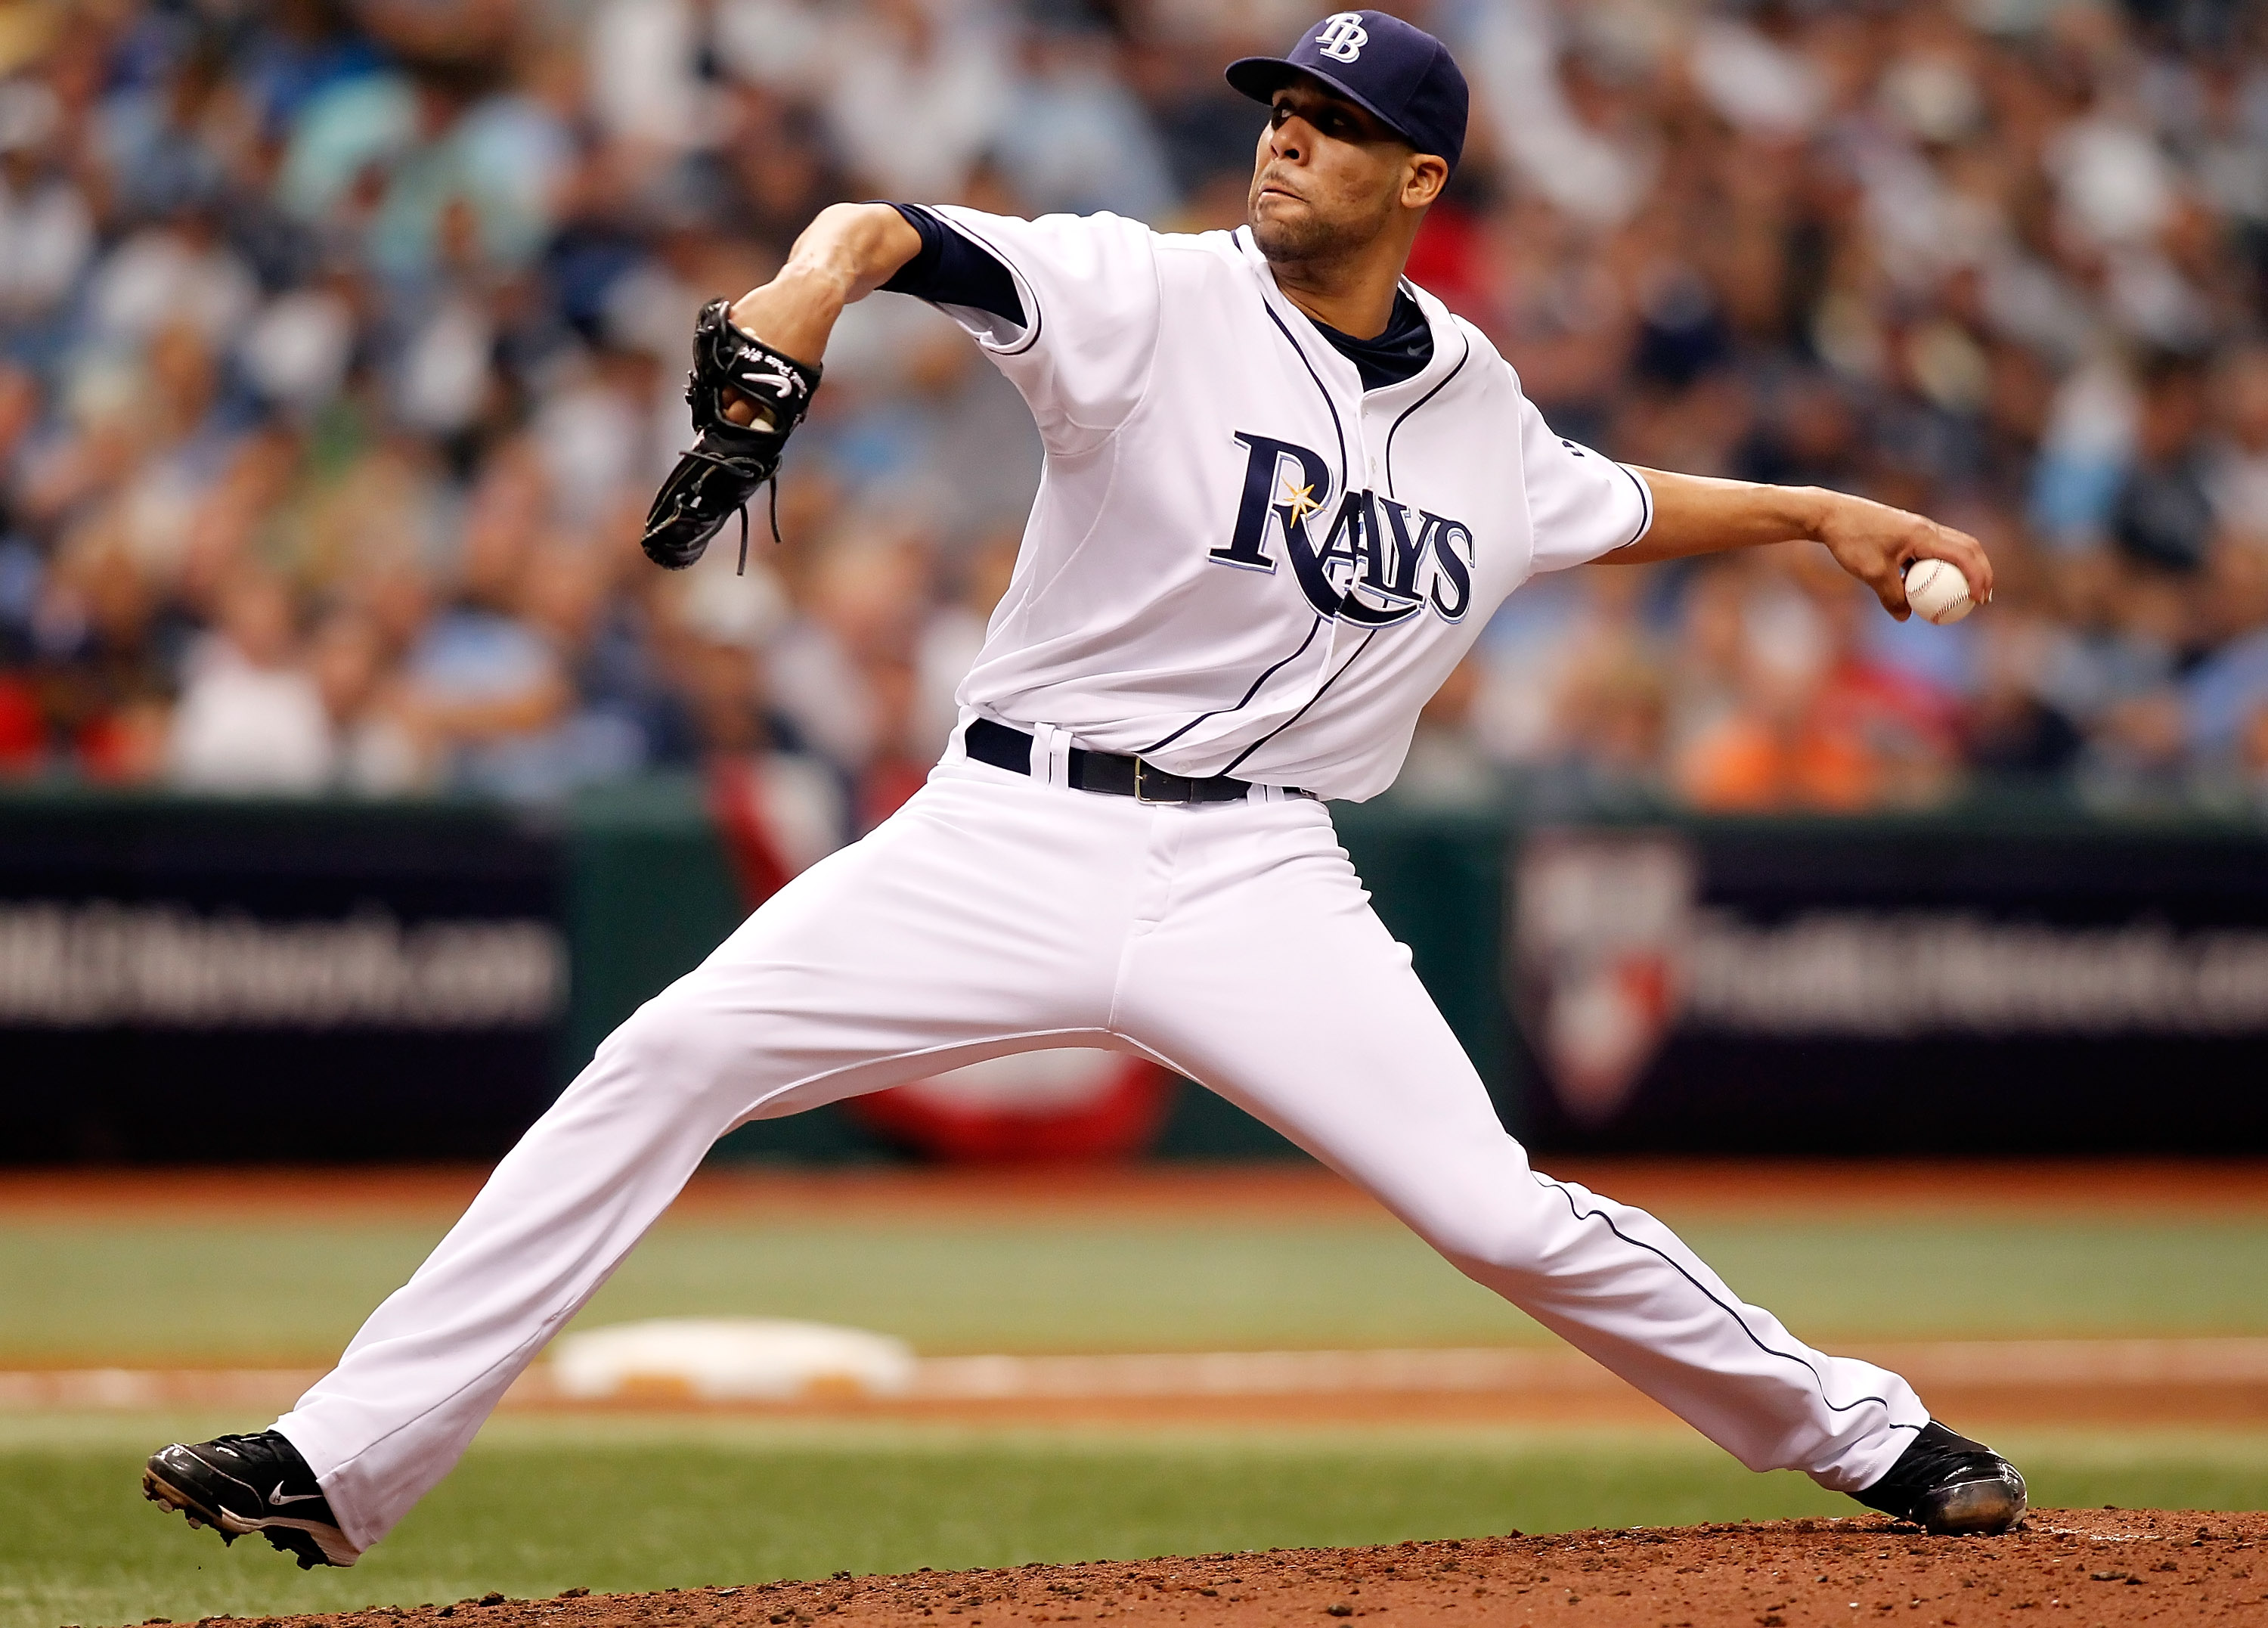 ST. PETERSBURG - OCTOBER 06:  Pitcher David Price #14 of the Tampa Bay Rays pitches against the Texas Rangers during Game 1 of the ALDS at Tropicana Field on October 6, 2010 in St. Petersburg, Florida.  (Photo by J. Meric/Getty Images)